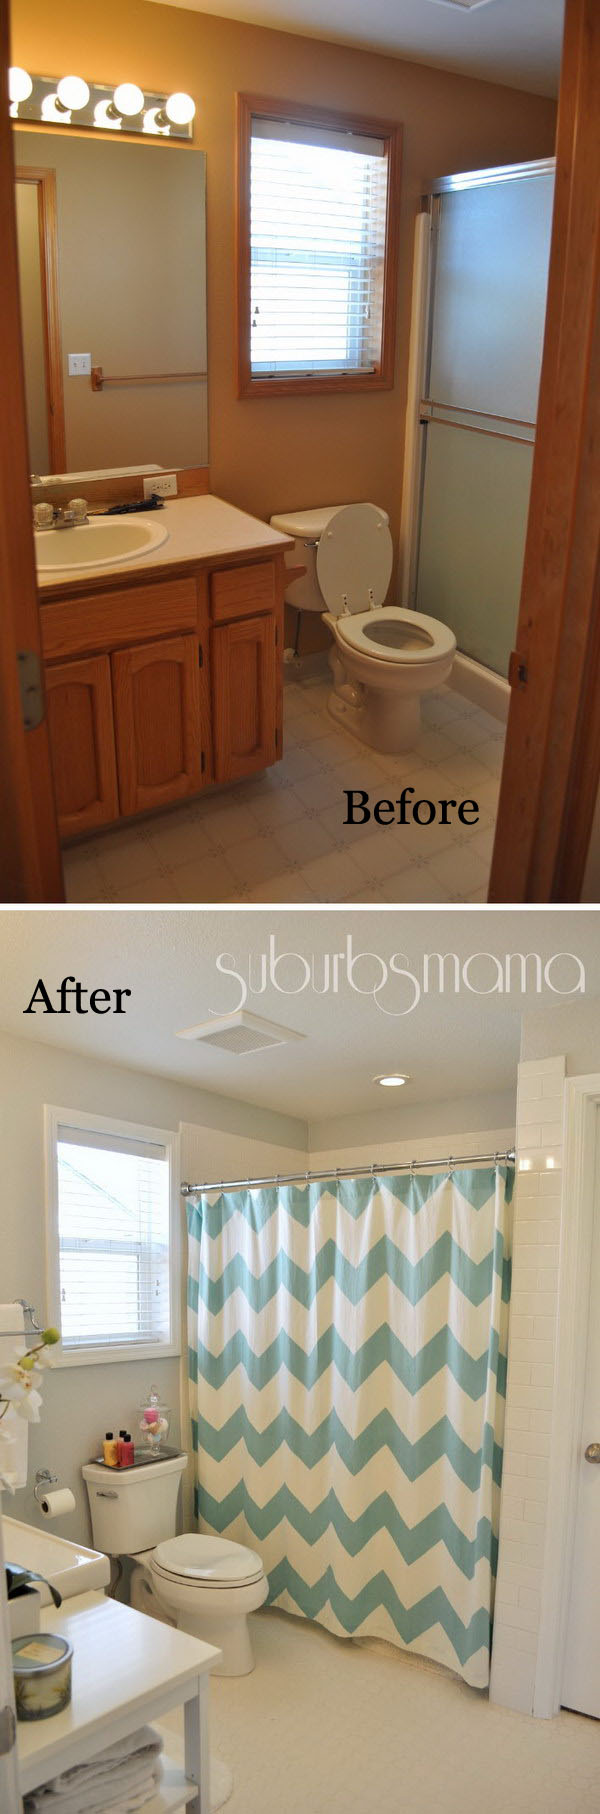 From Brown To White Color Tiny Bathroom Remodel.